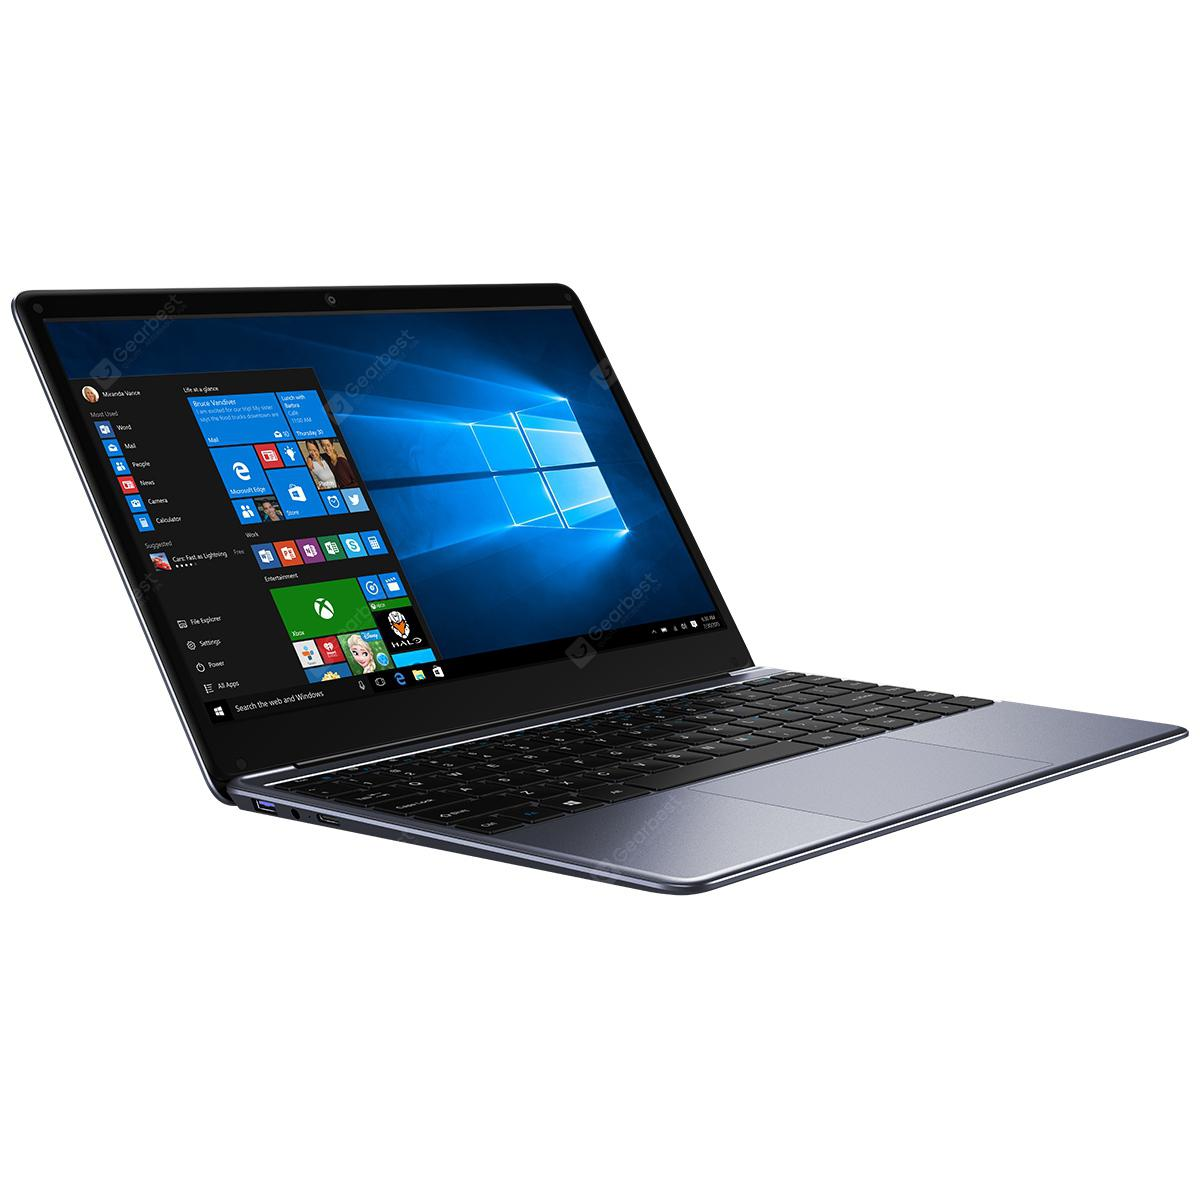 CHUWI HeroBook Laptop Windows 10 Intel E